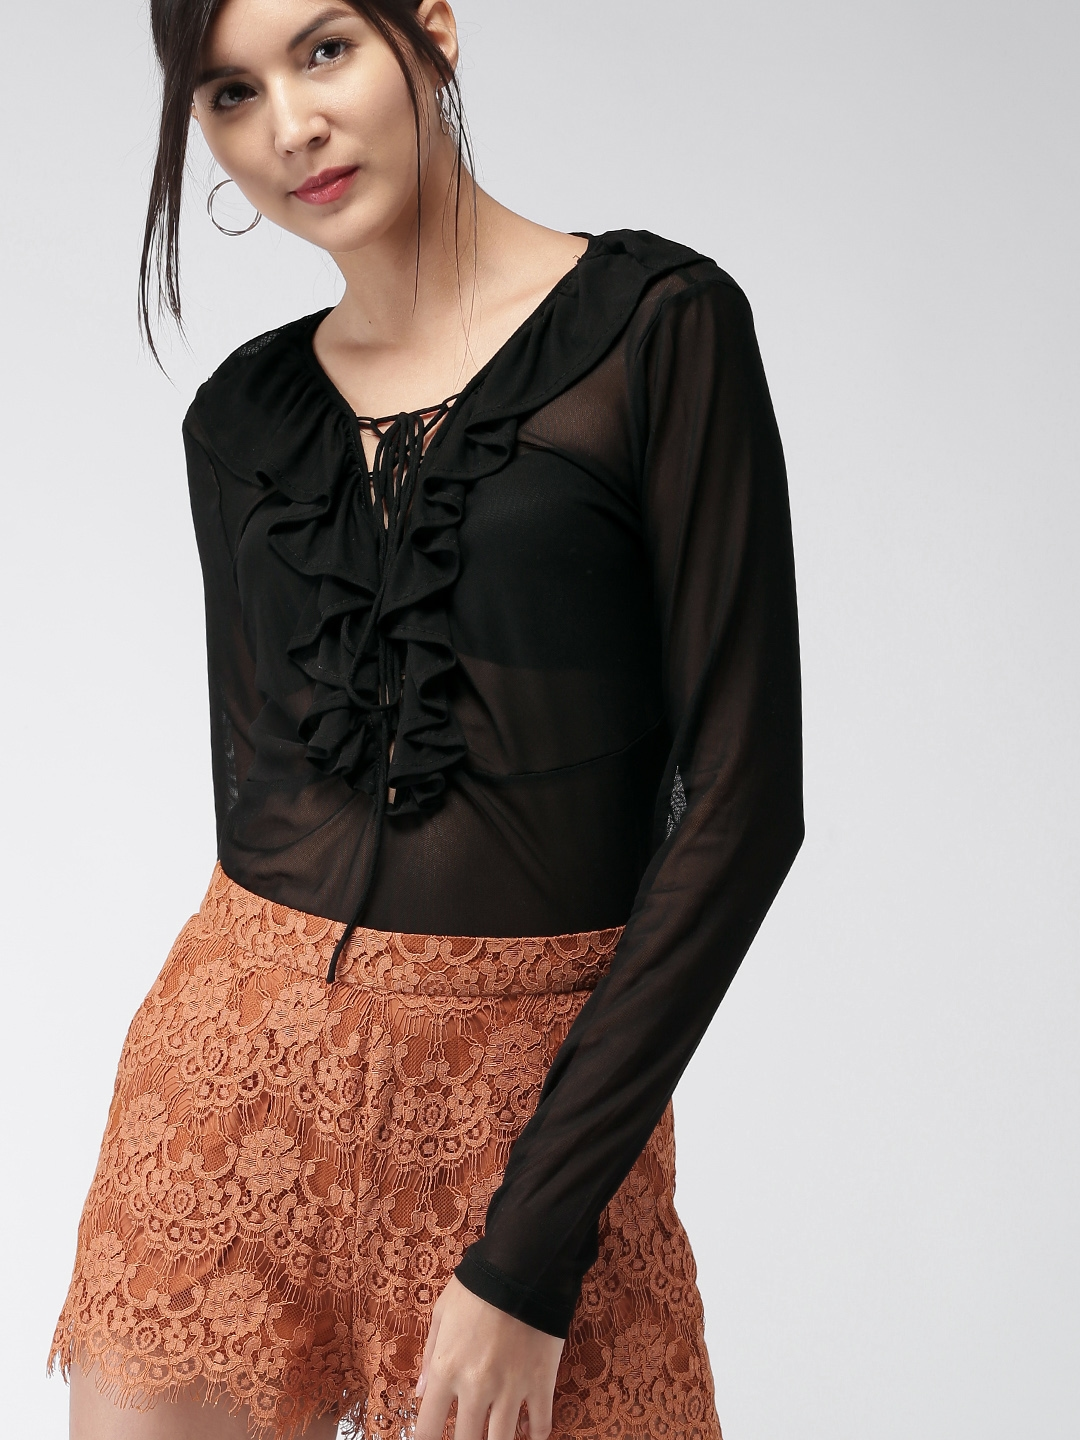 Sheer Black Blouse Forever 21 Anlis